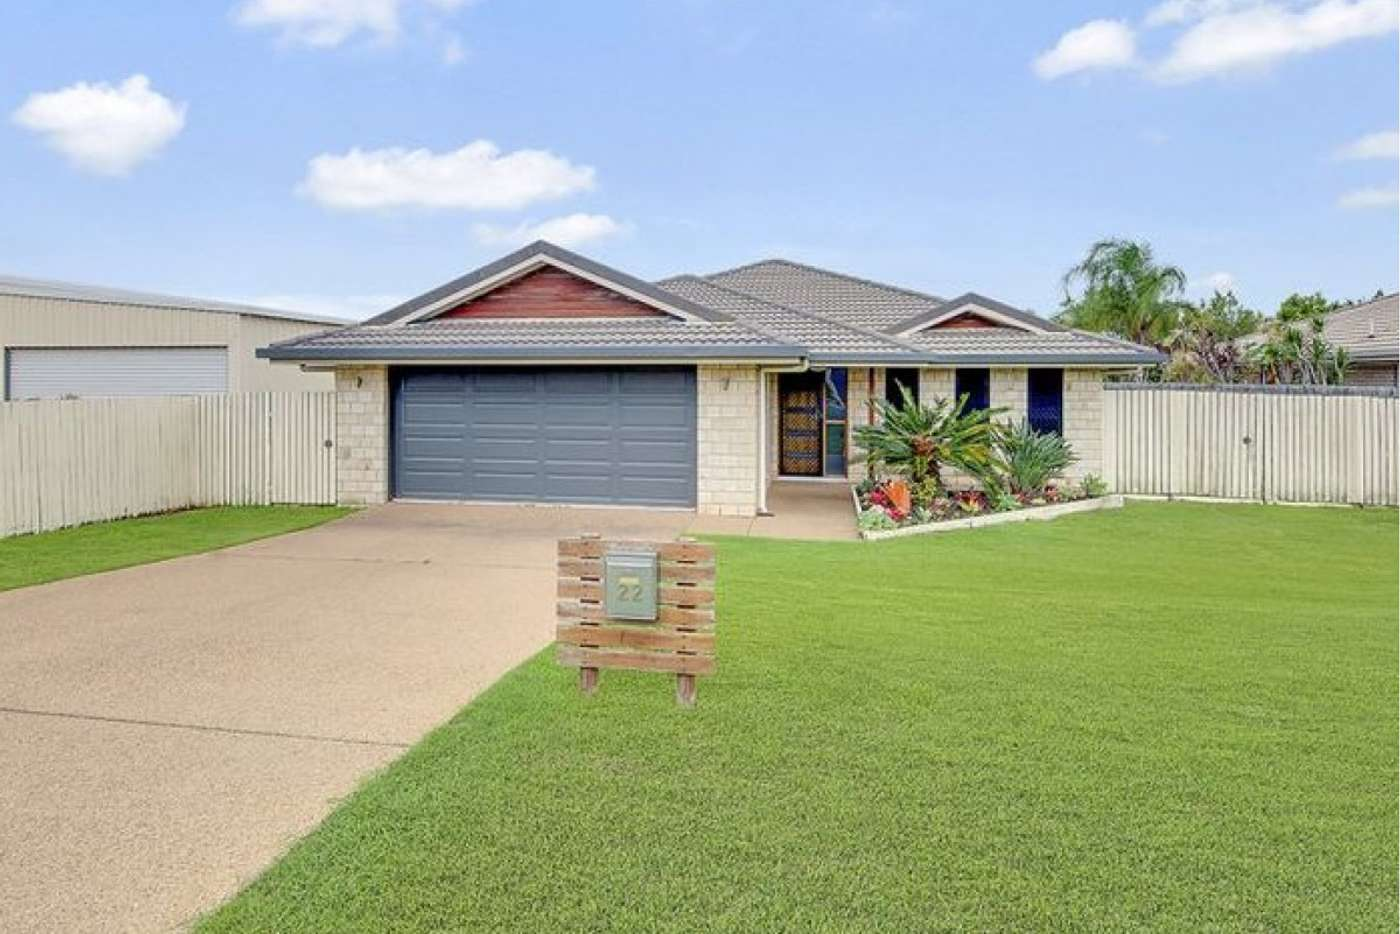 Main view of Homely house listing, 22 Kingfisher Drive, Yeppoon QLD 4703